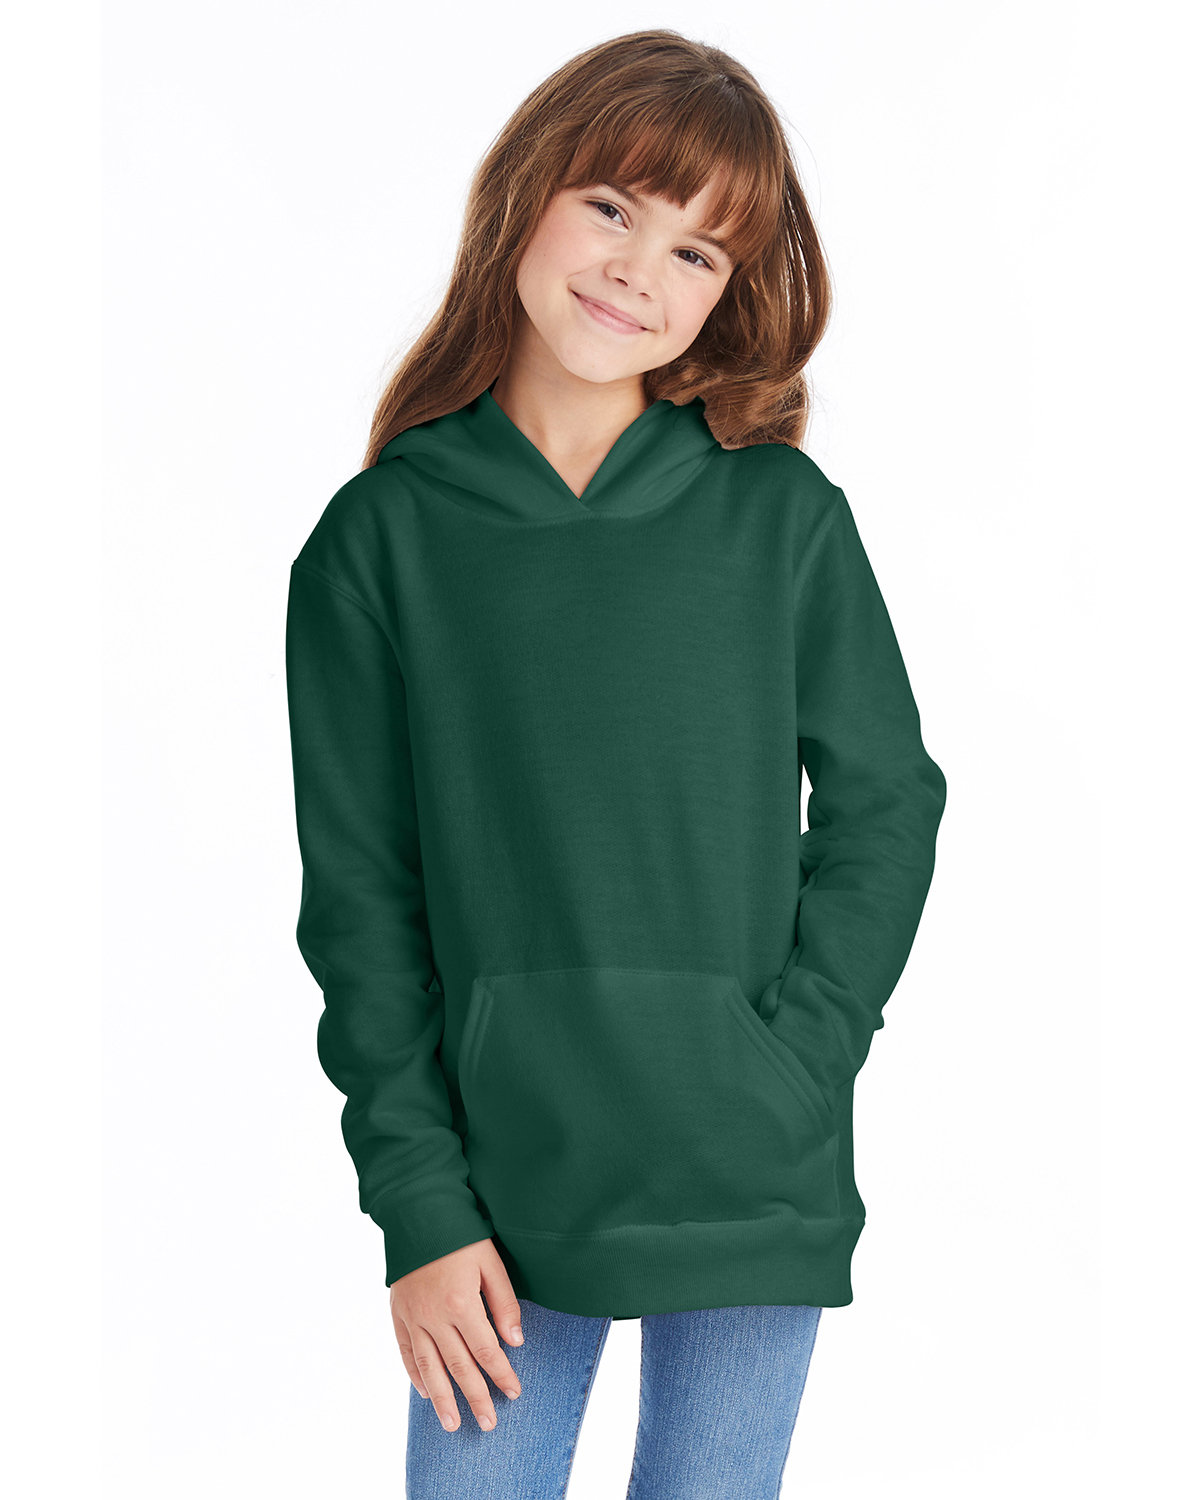 Hanes Youth EcoSmart® 50/50 Pullover Hooded Sweatshirt DEEP FOREST